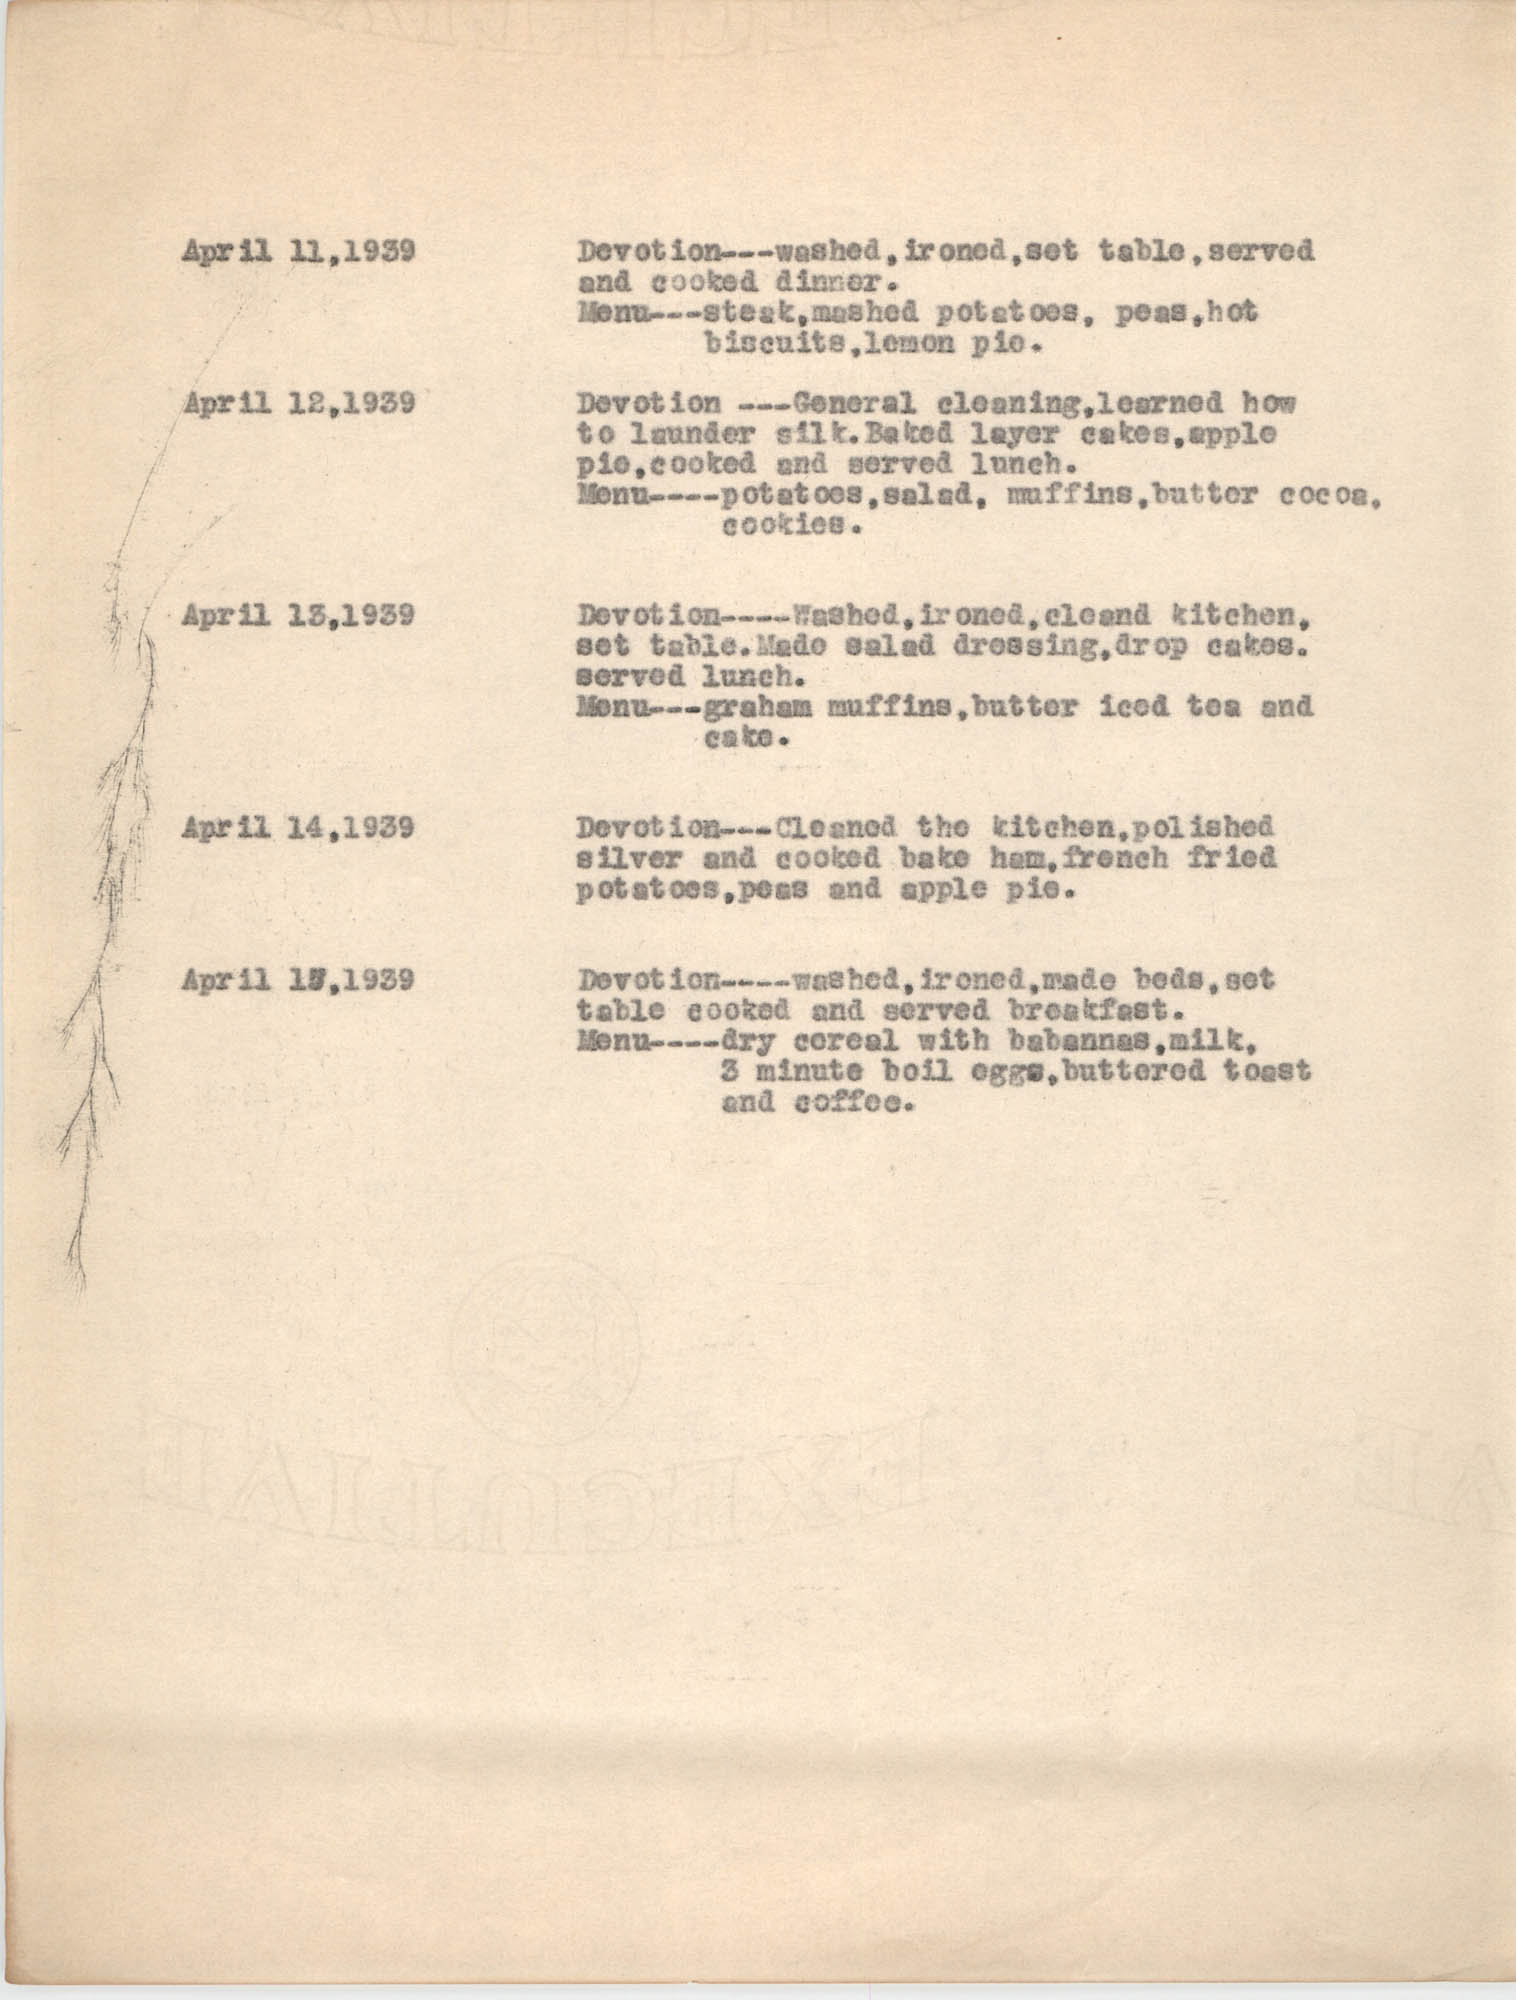 Monthly Report for the Coming Street Y.W.C.A., March 1939, Branch Training School, Page 3